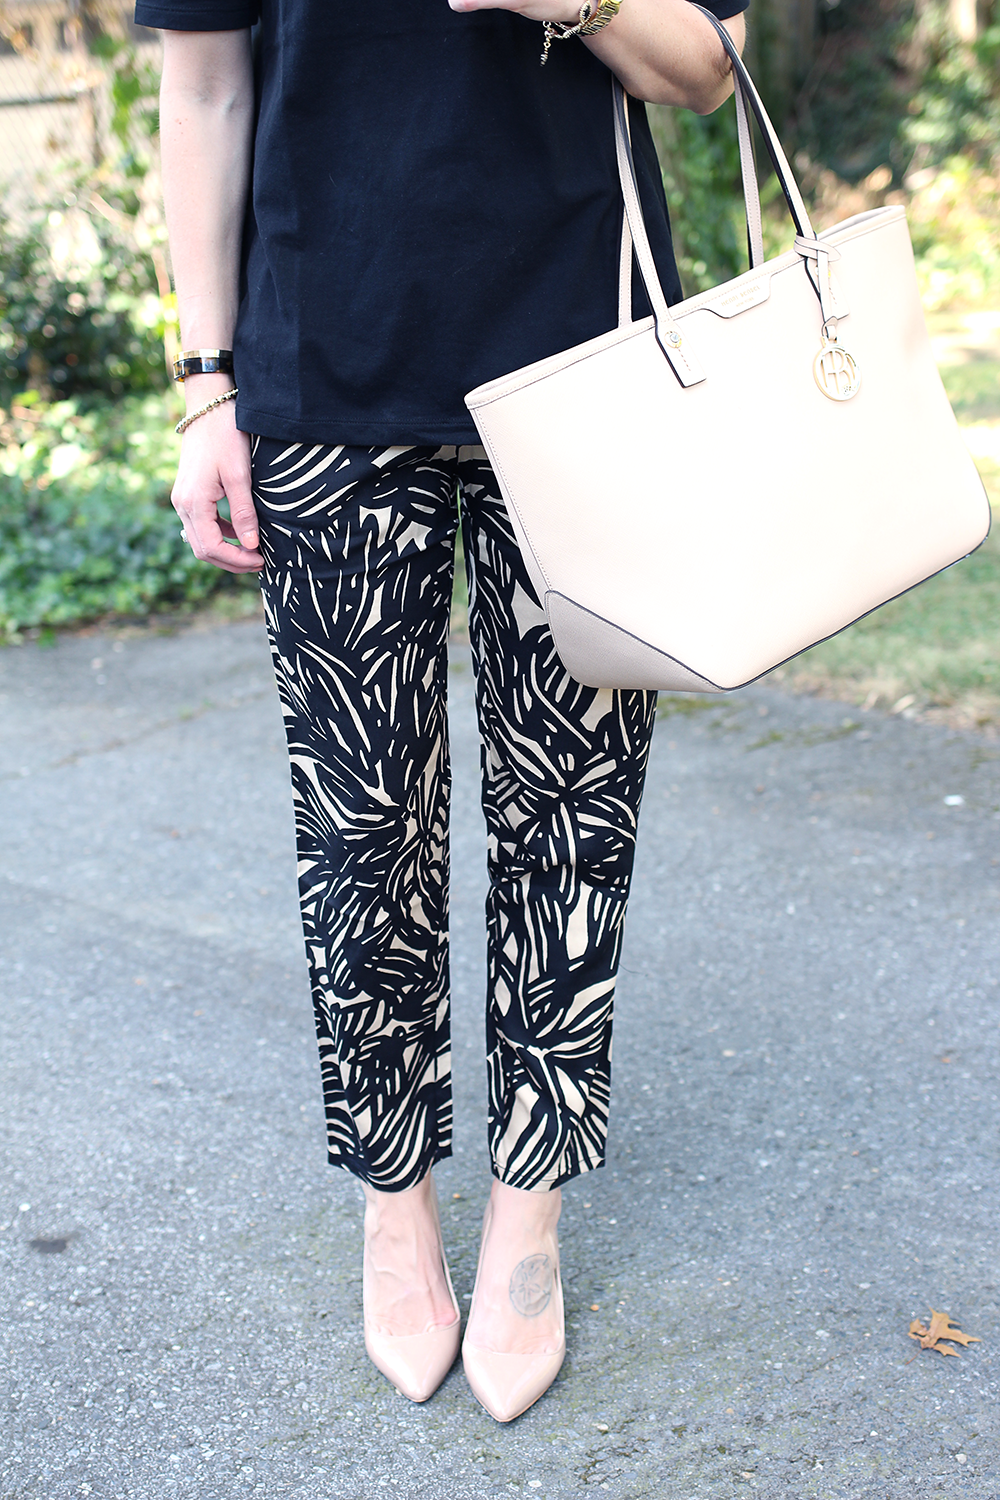 Patterned Pants from Gap, Black and Beige Outfit Idea, Nude Heels